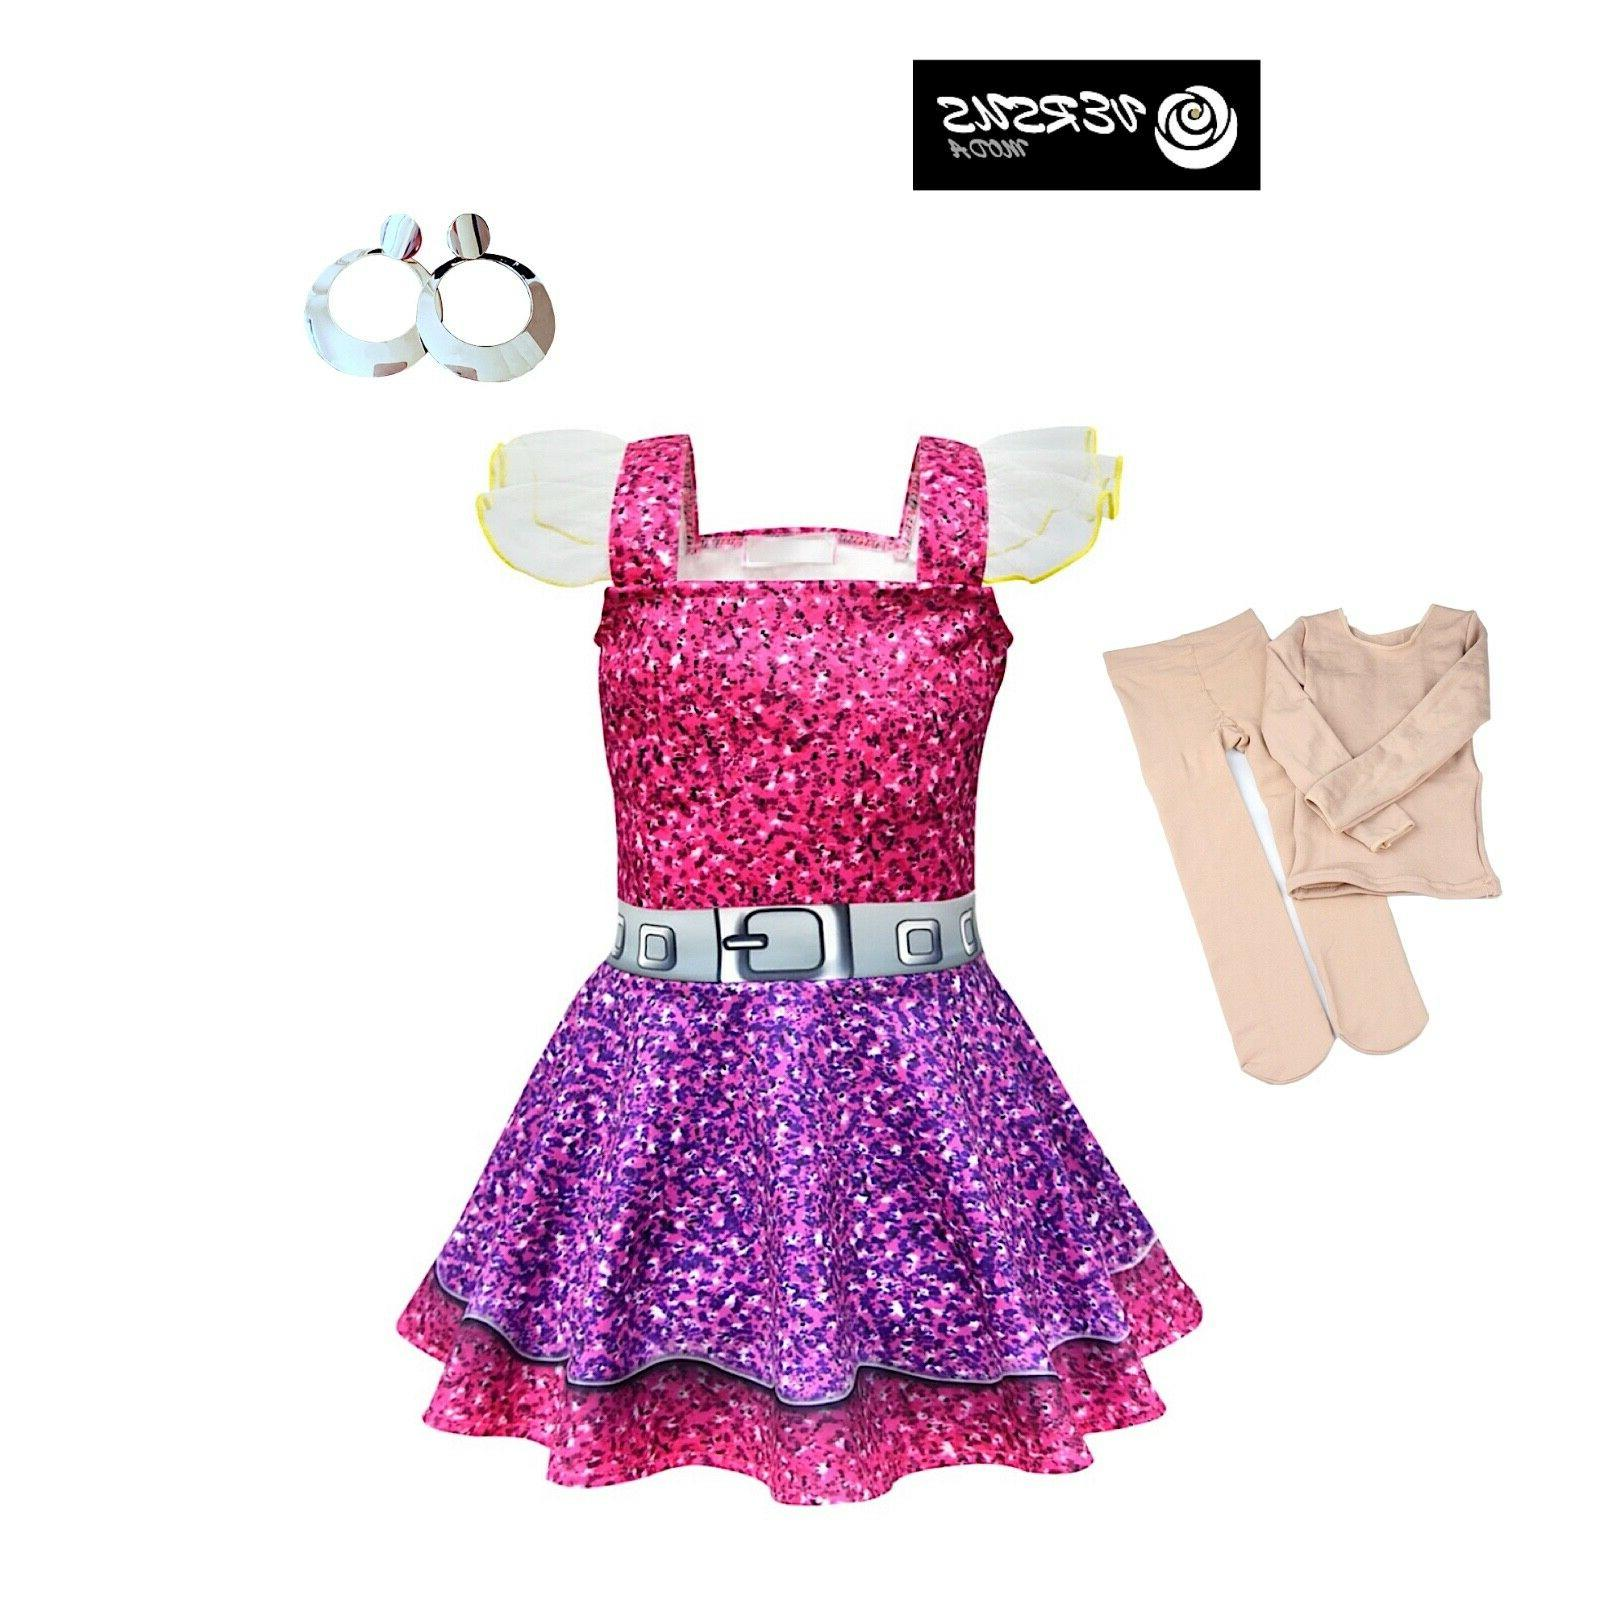 simil lol purple queen dress cosplay child